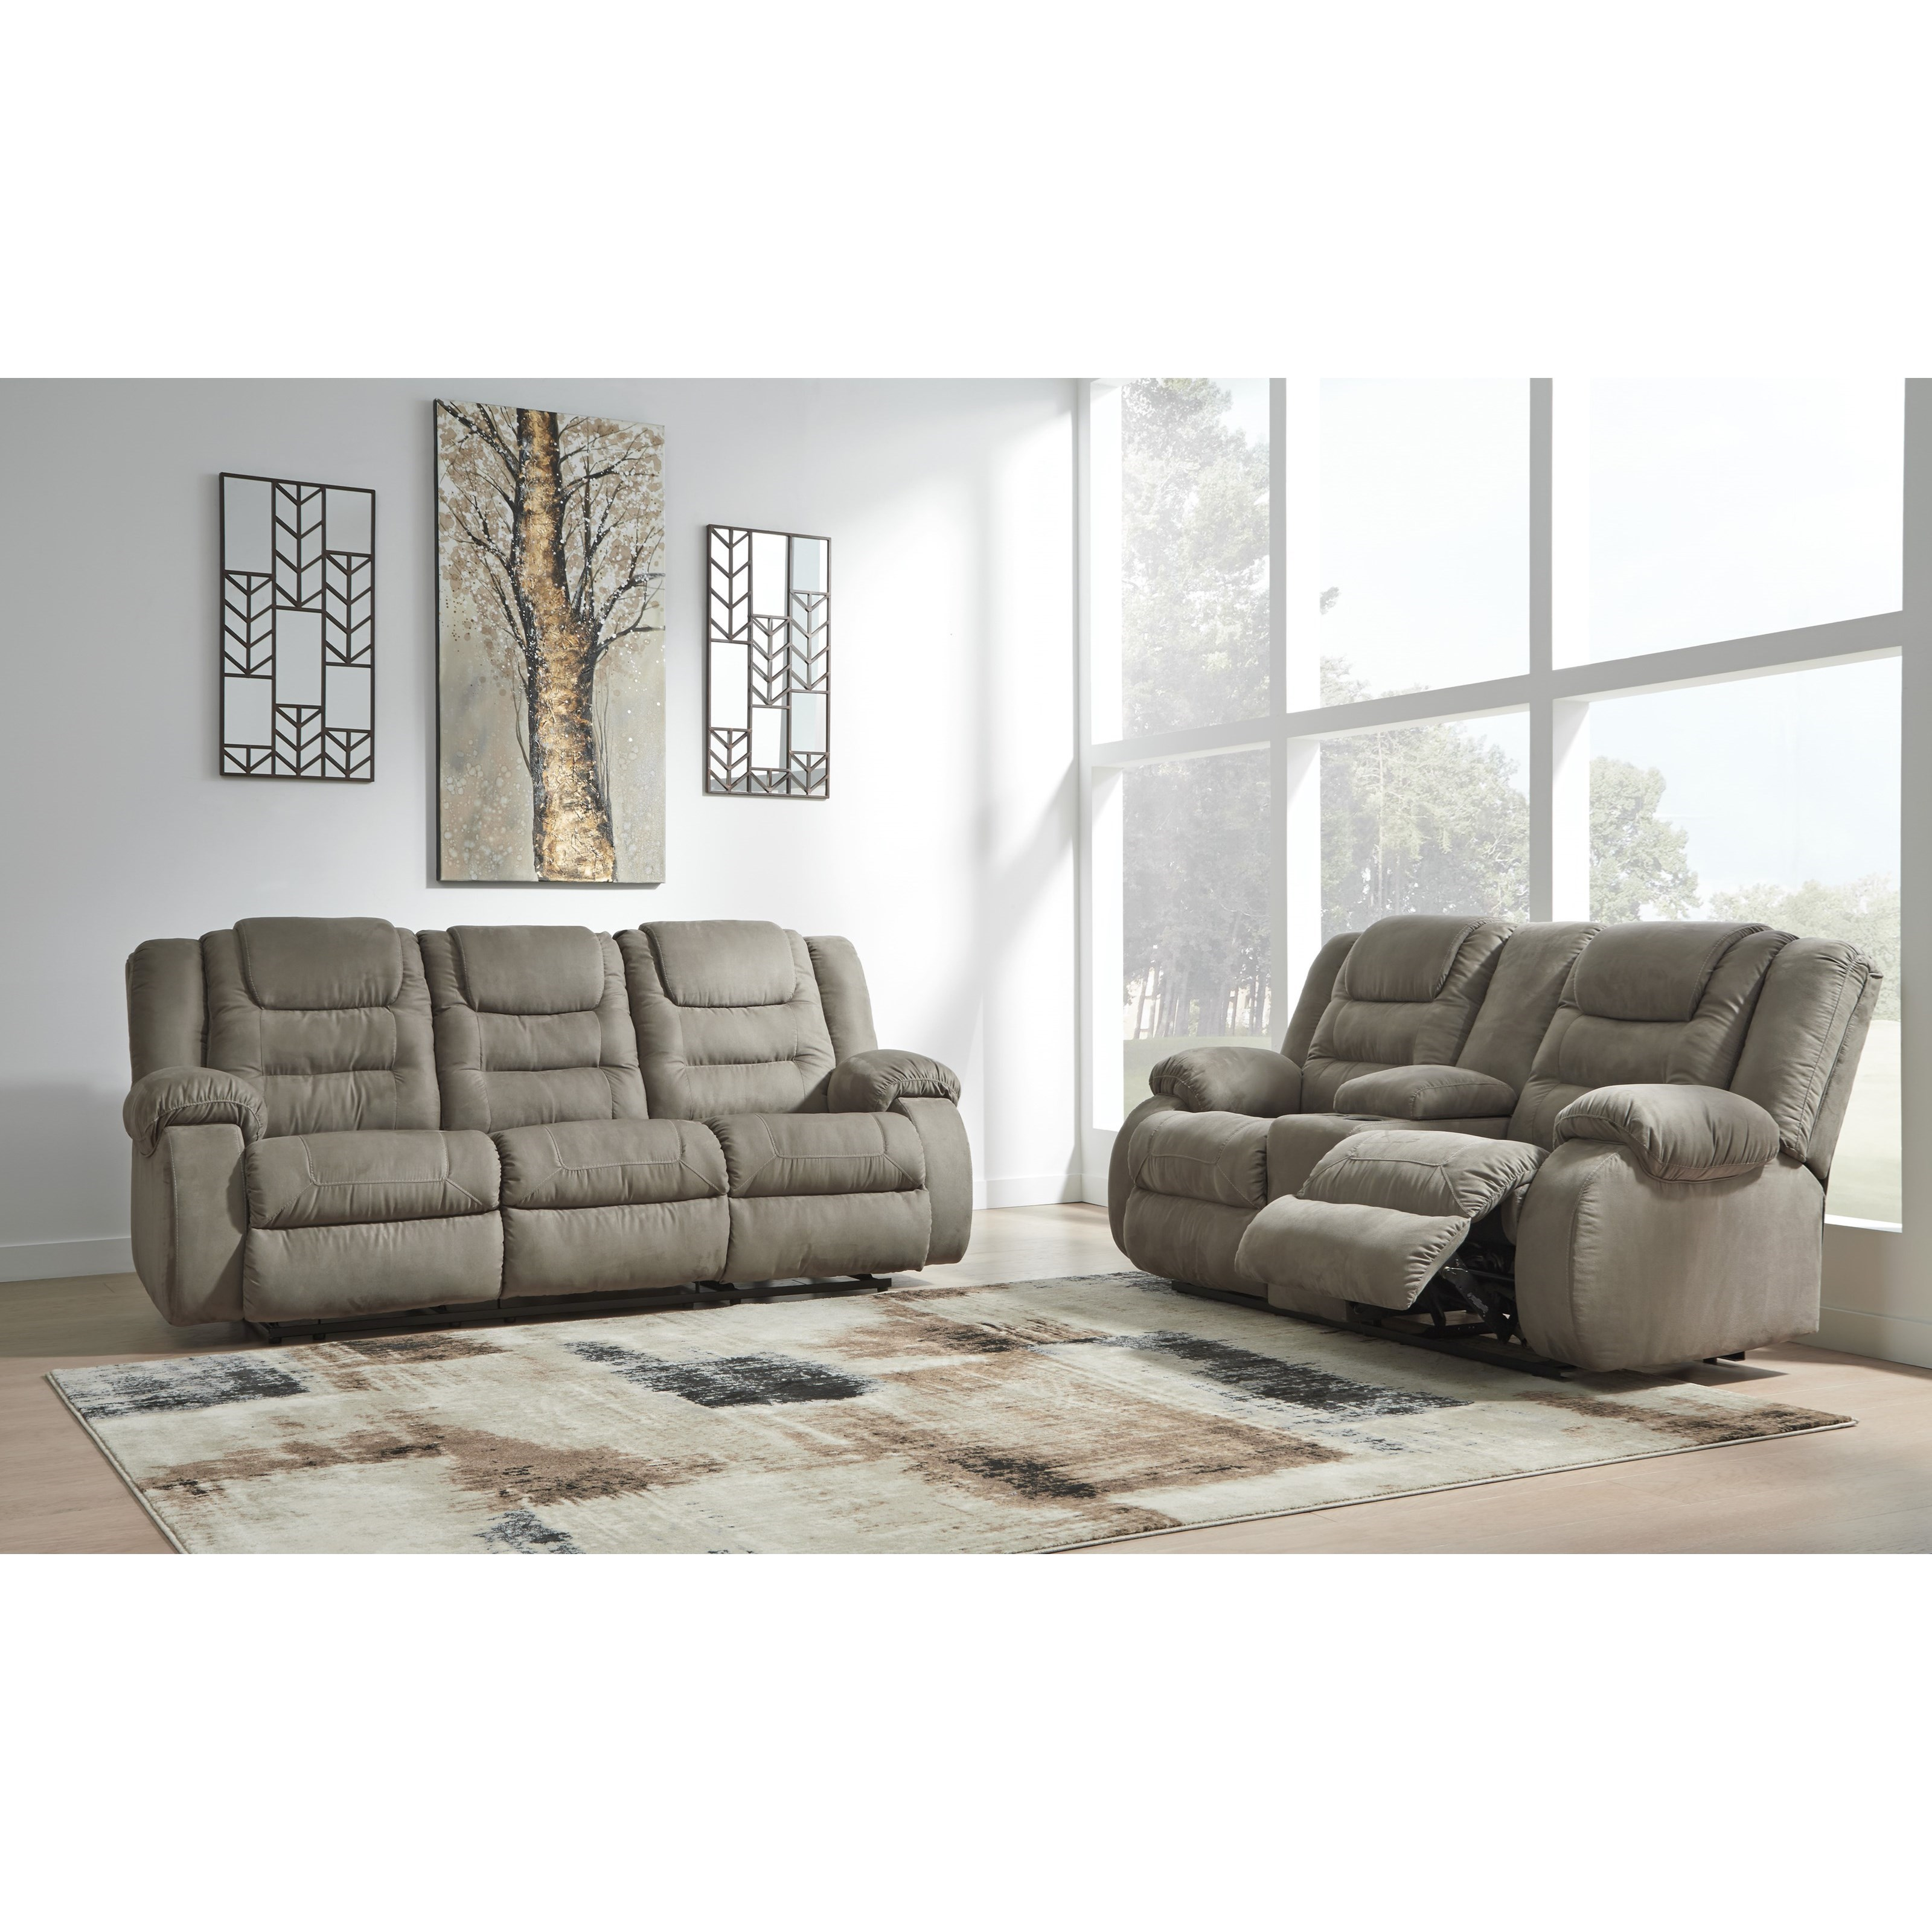 McCade Reclining Living Room Group by Signature Design by Ashley at Houston's Yuma Furniture